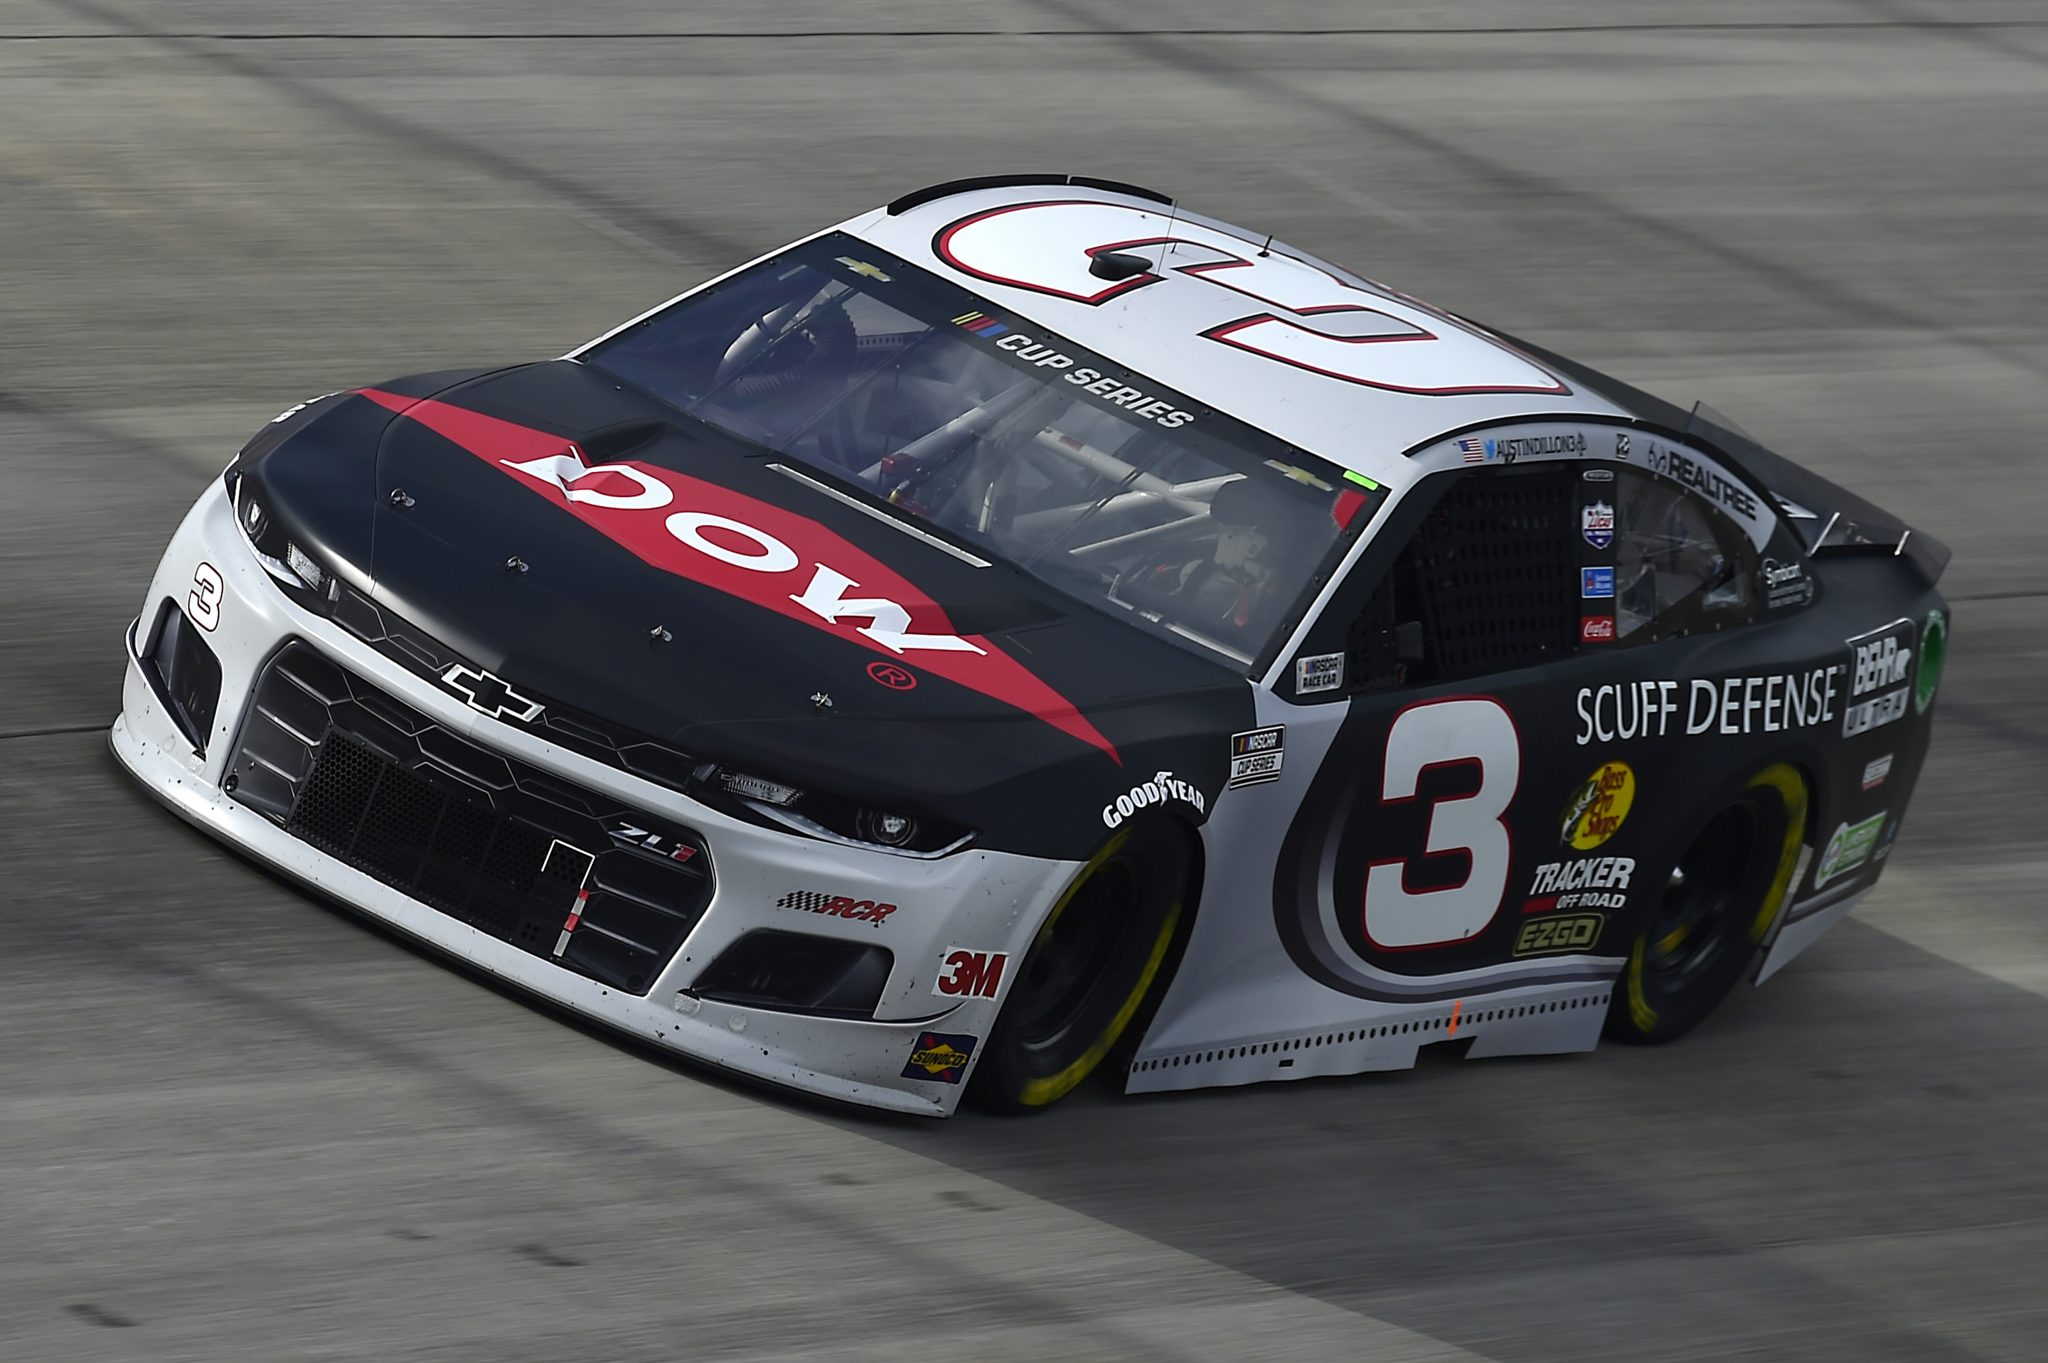 DOVER, DELAWARE - AUGUST 22: Austin Dillon, driver of the #3 Dow/Behr Ultra Scuff Defense Chevrolet, drives during the NASCAR Cup Series Drydene 311 at Dover International Speedway on August 22, 2020 in Dover, Delaware. (Photo by Jared C. Tilton/Getty Images) | Getty Images